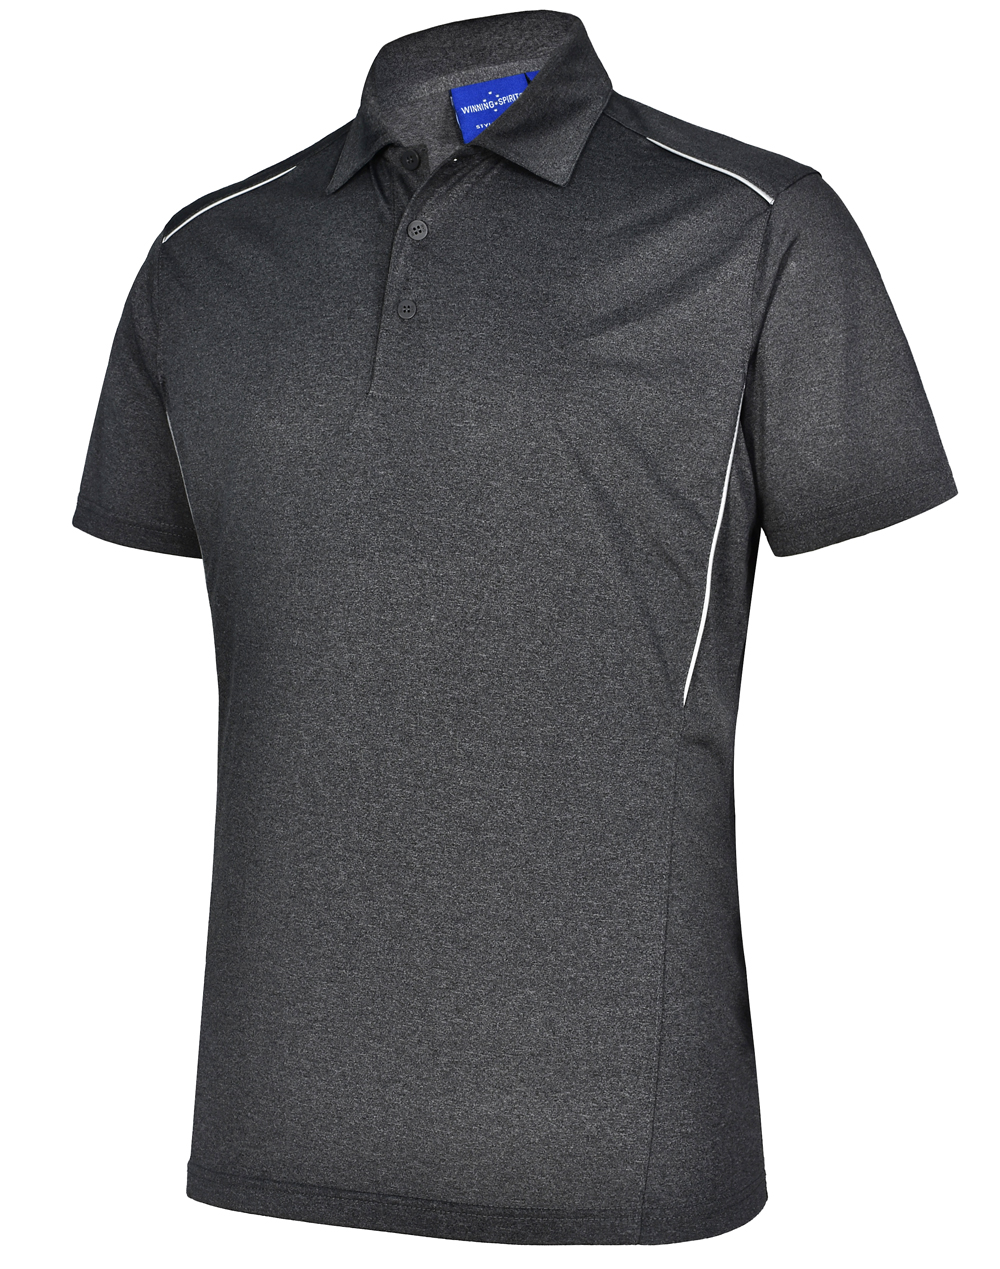 https://s3-ap-southeast-1.amazonaws.com/ws-imgs/POLOSHIRTS/PS85_Black_Side.jpg